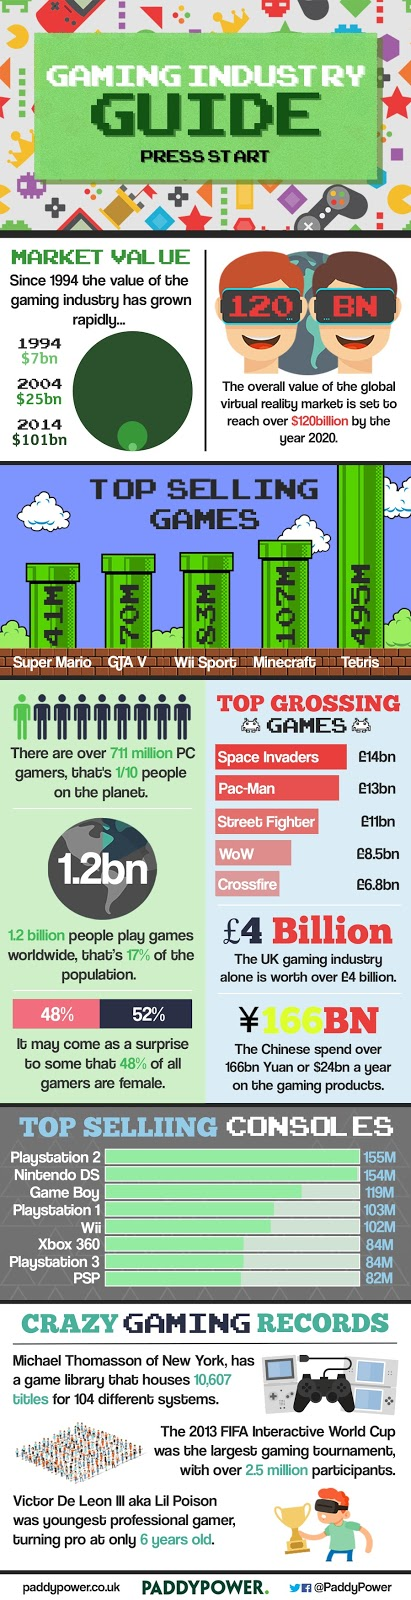 Paddy Power Gaming Industry Infographic